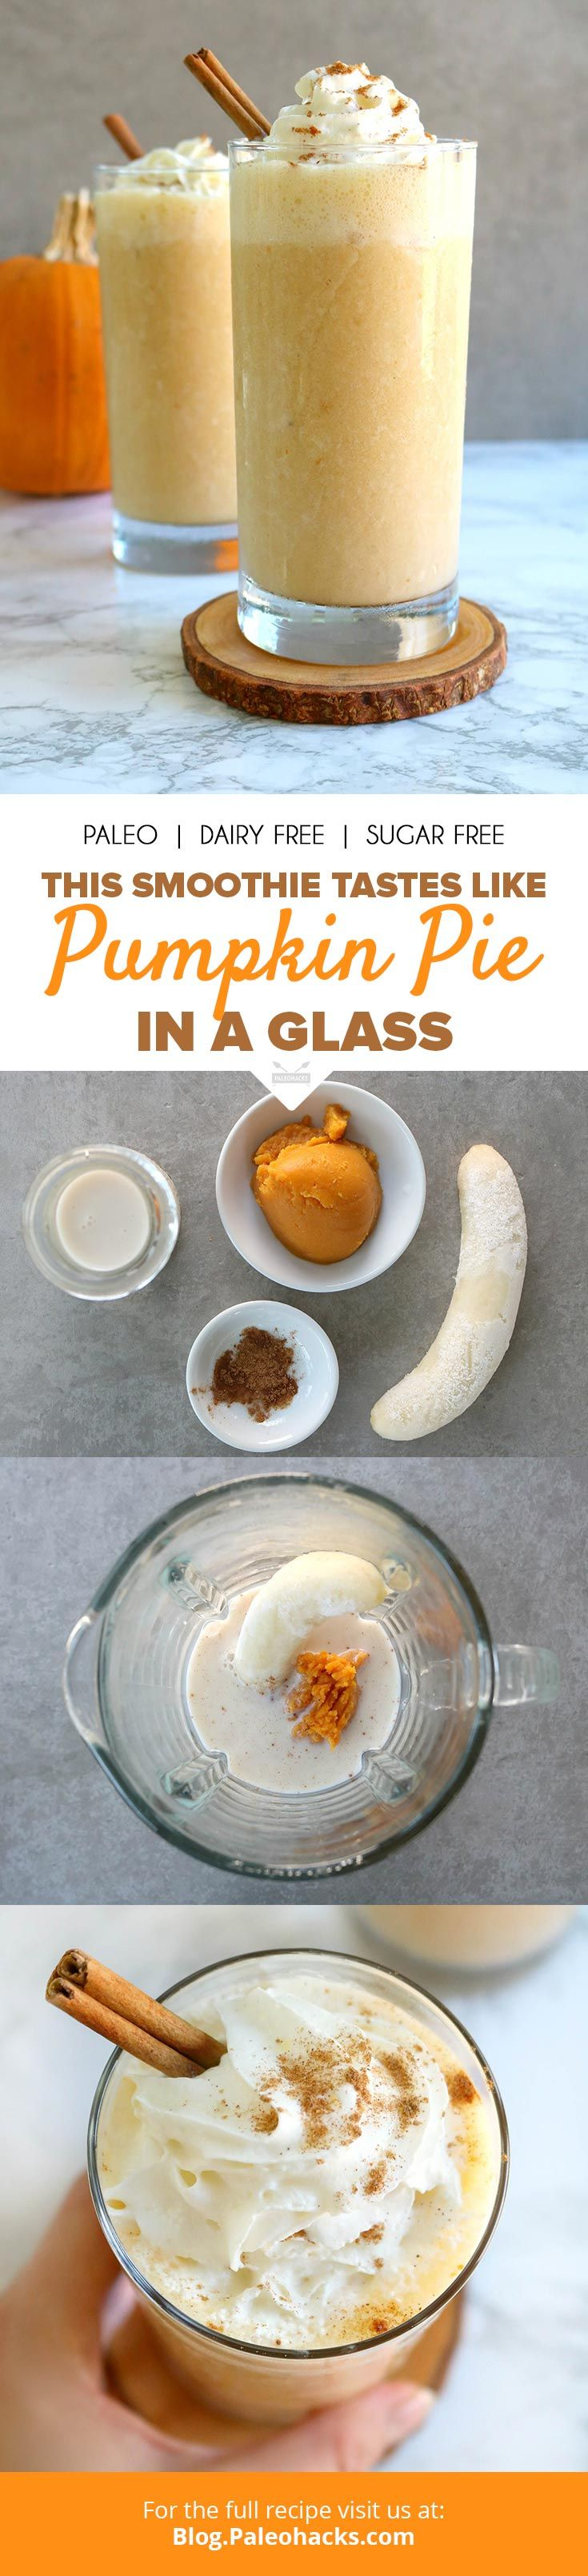 PIN-This-Smoothie-Tastes-Like-Pumpkin-Pie-in-a-Glass.jpg